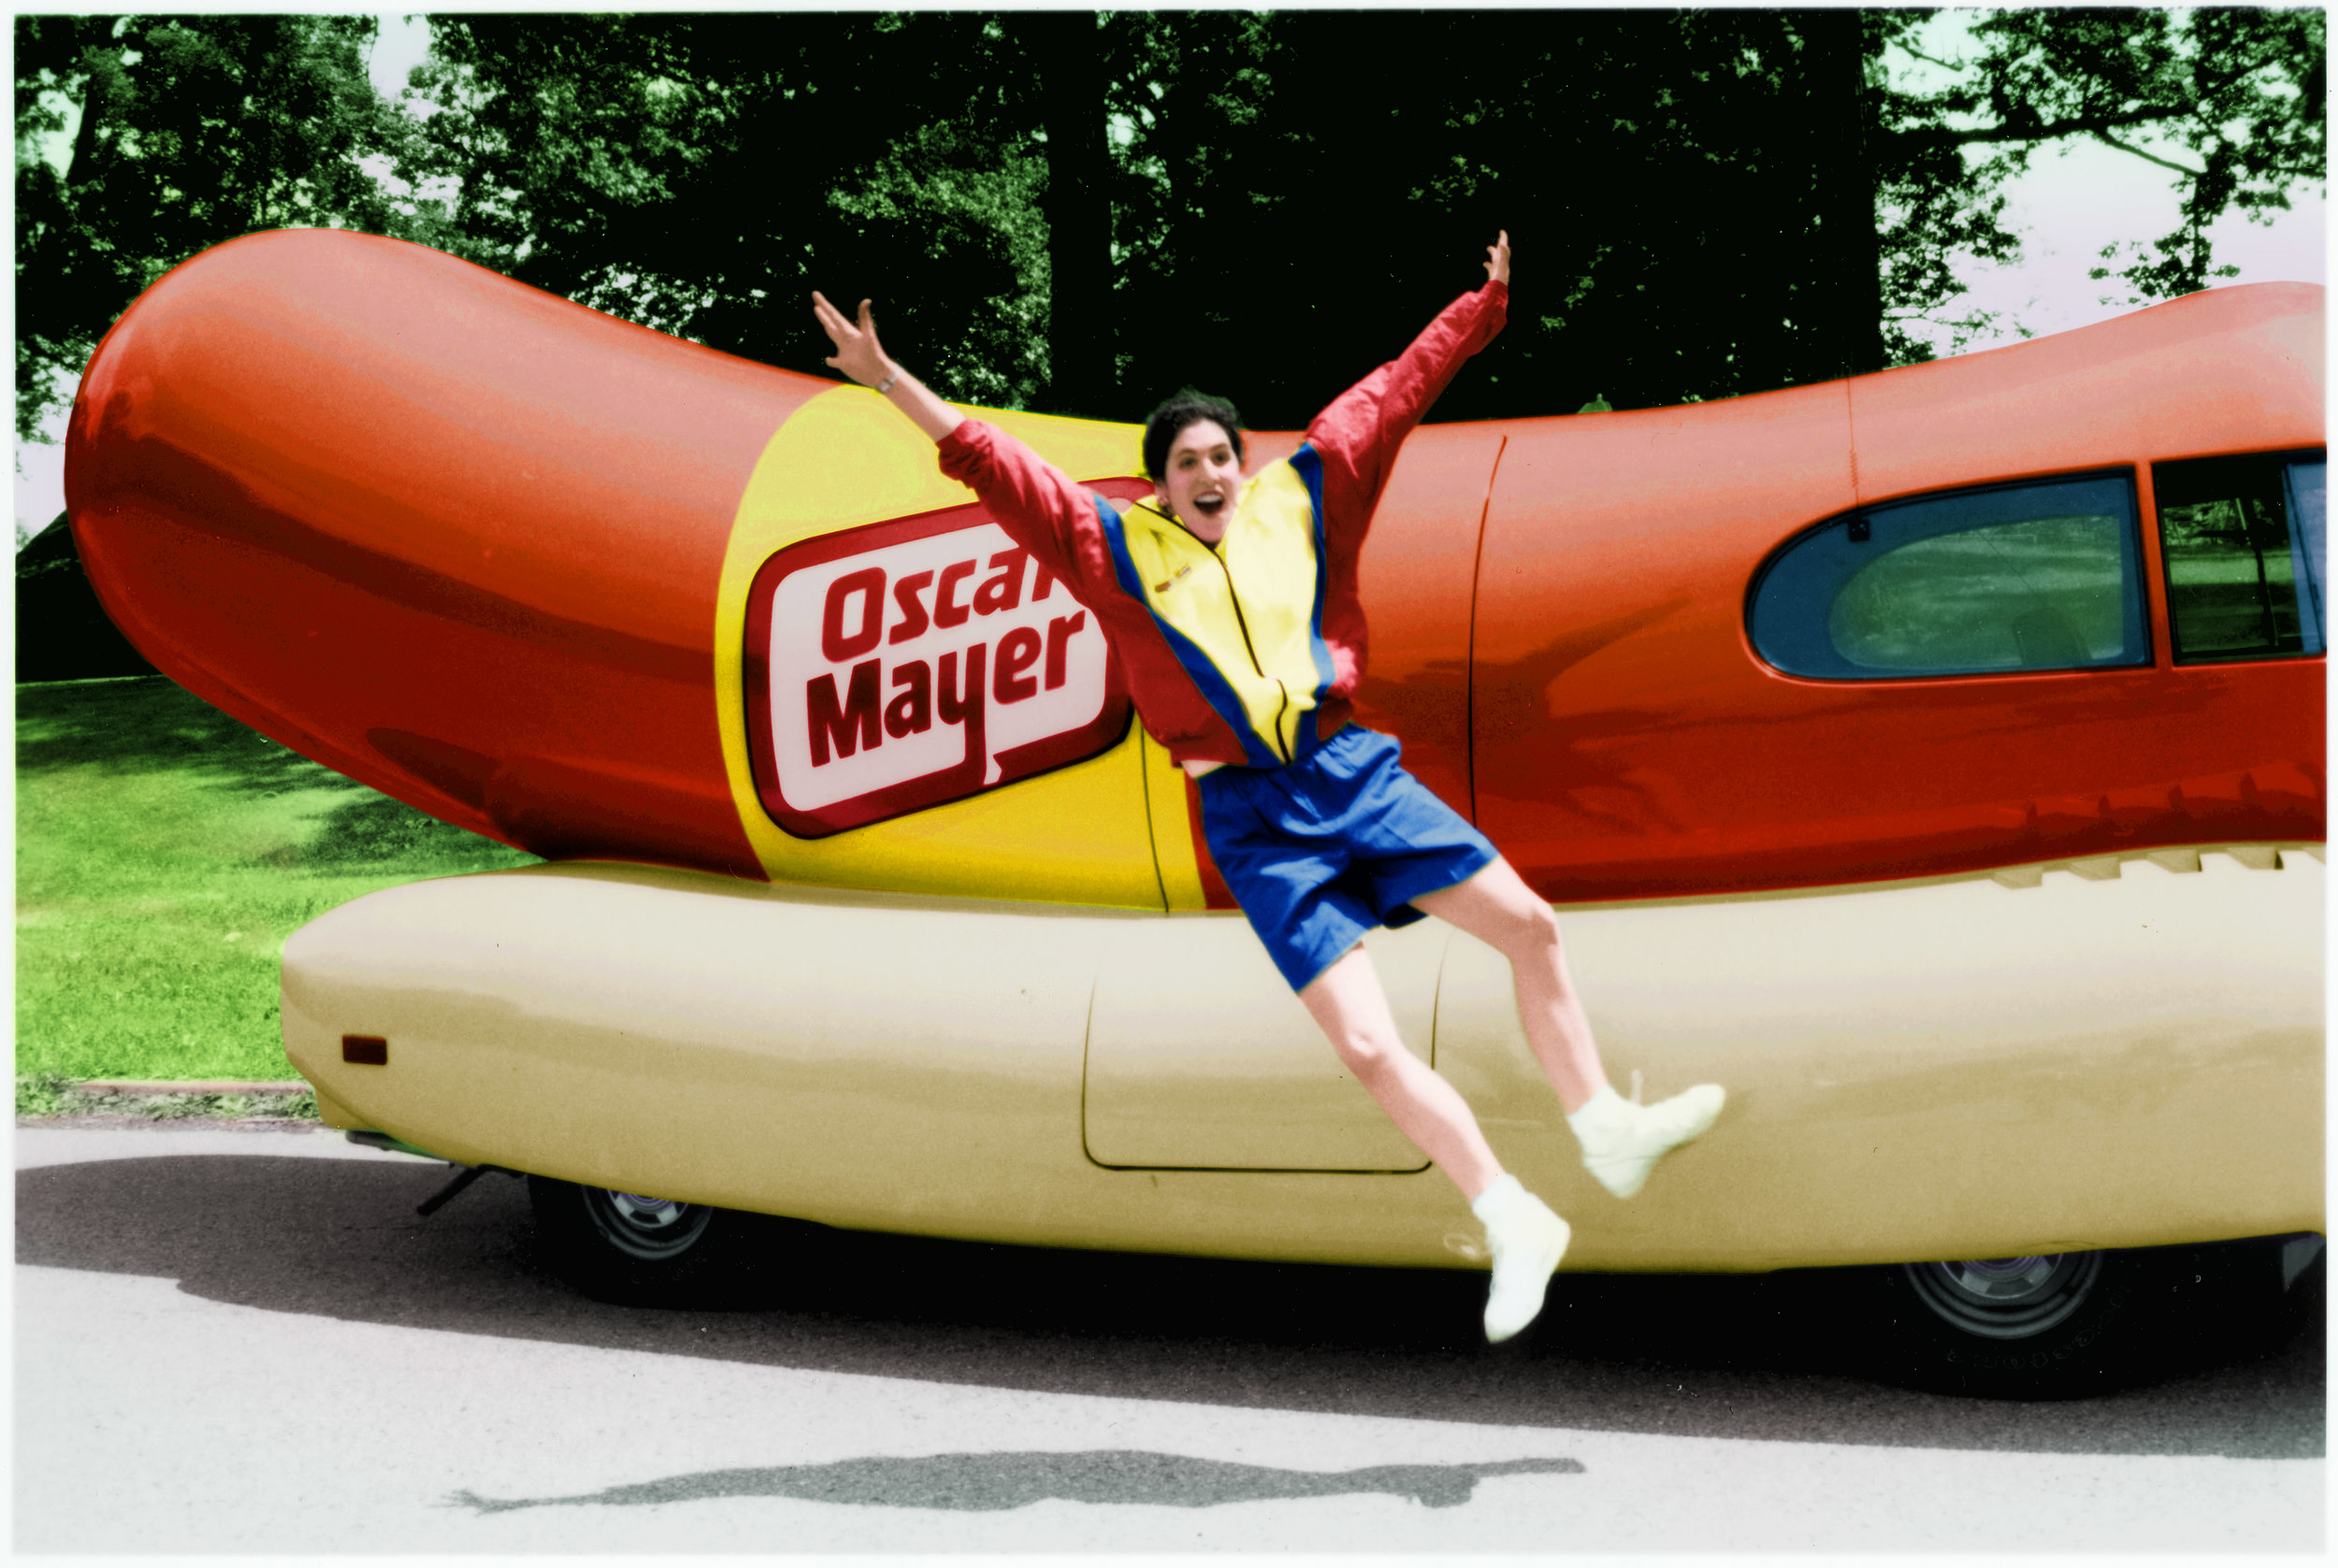 Dreaming of Driving The Wienermobile (Forbes)